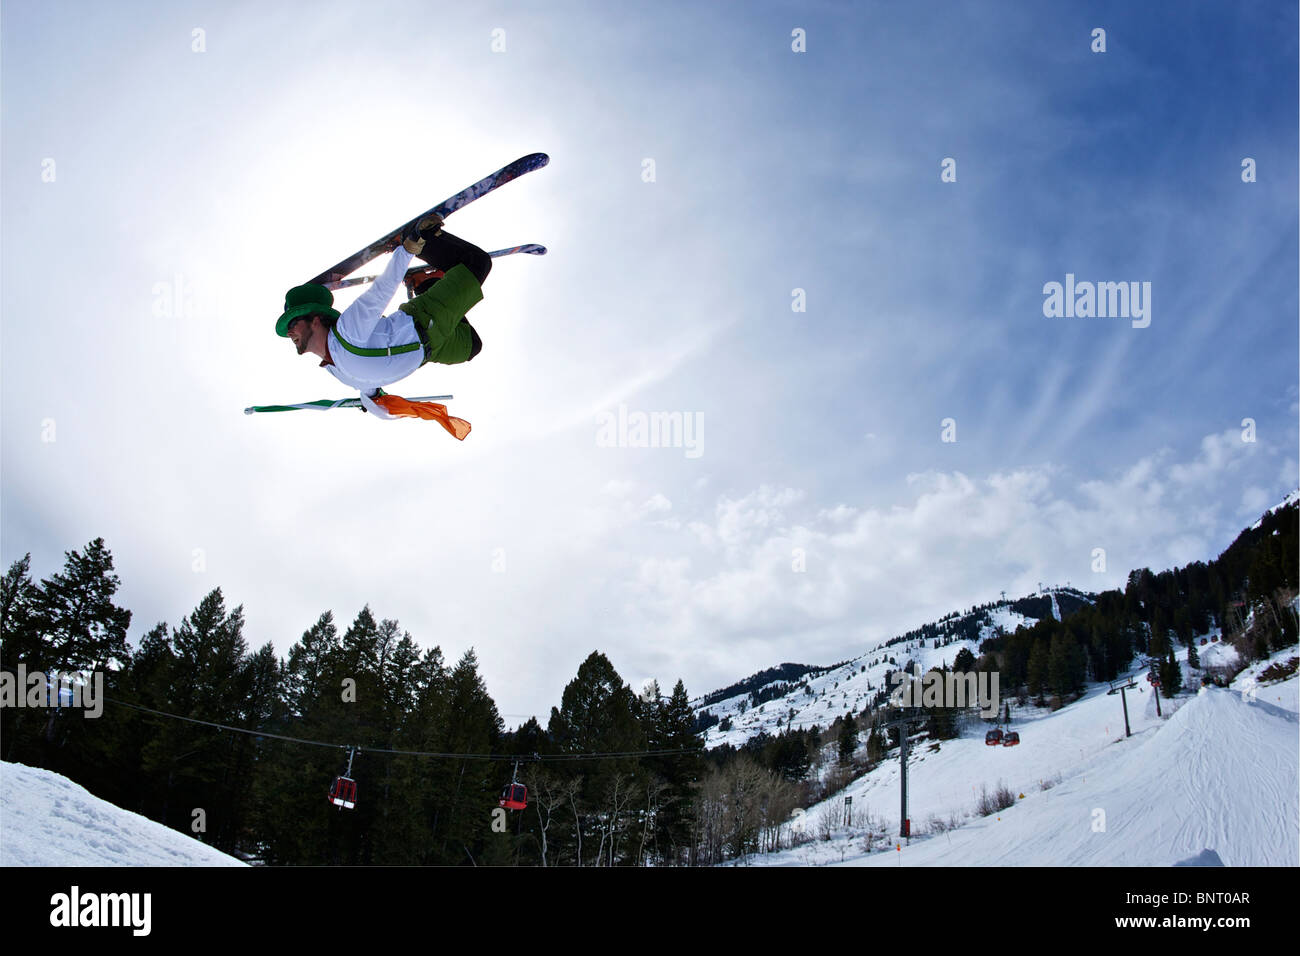 A man dressed as an Irish leprechaun jumps on his skis in Wyoming. - Stock Image